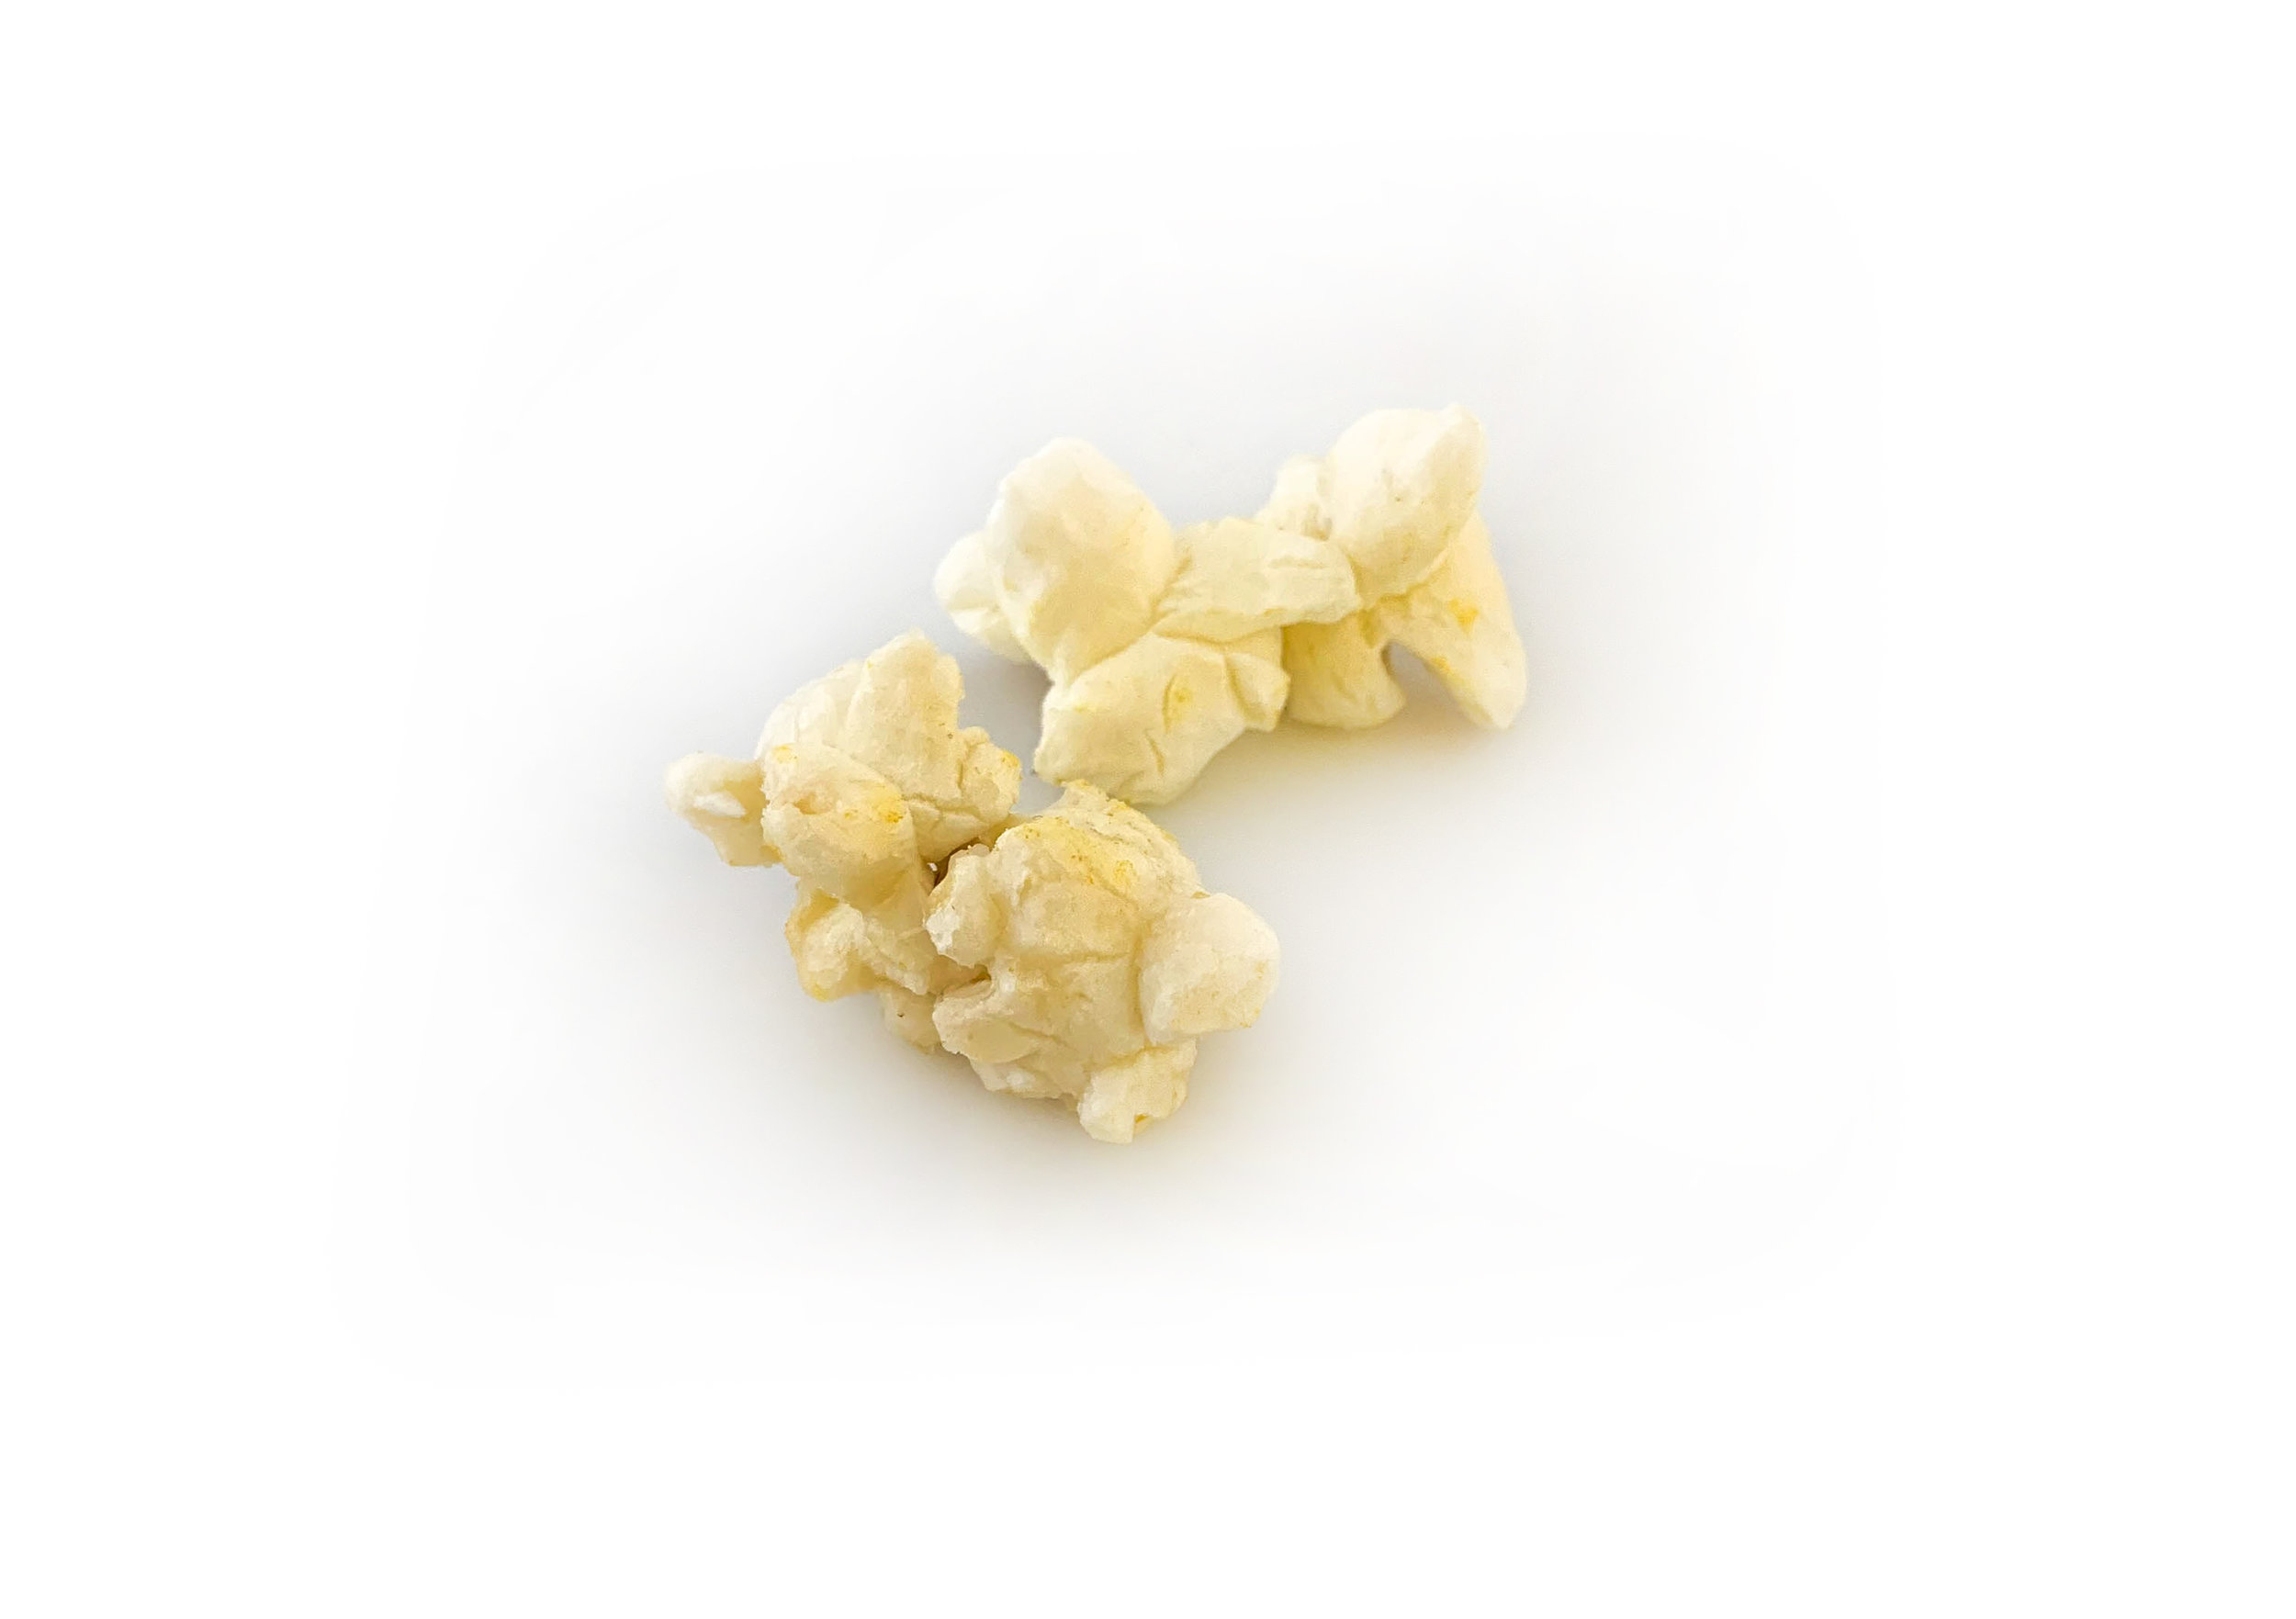 Kettle Corn - Our hand crafted kettle corn is the perfect balance of sweet and salty.